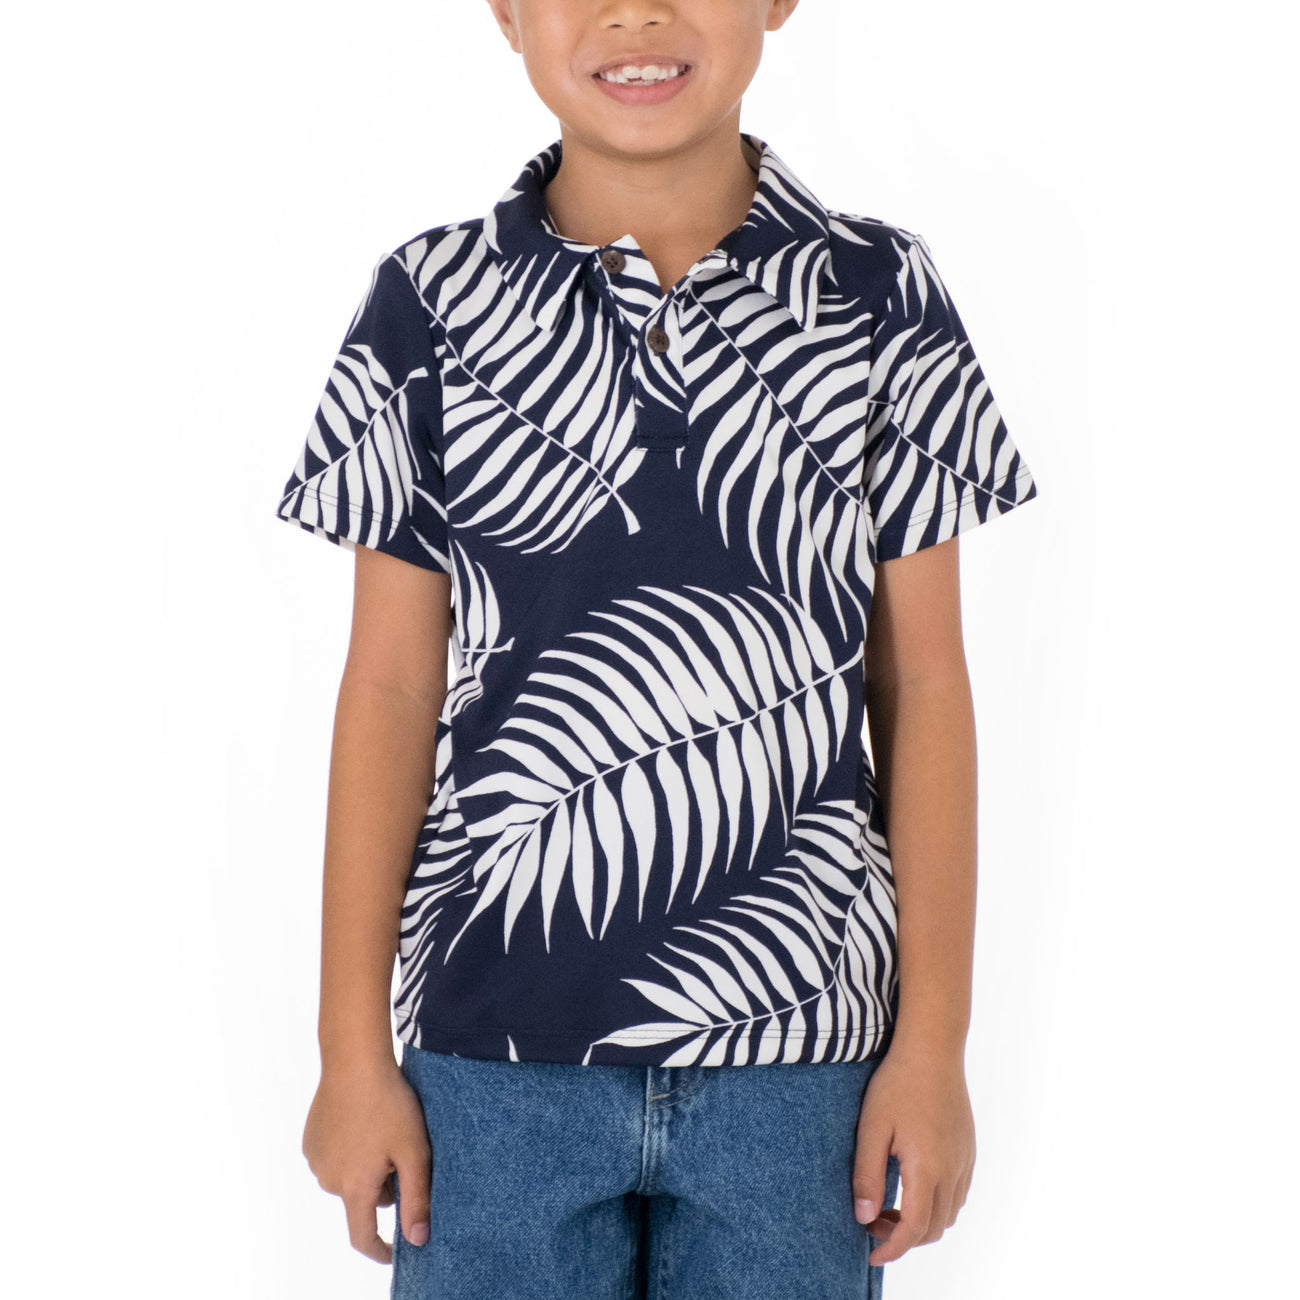 LI'I BOYS KNIT POLO